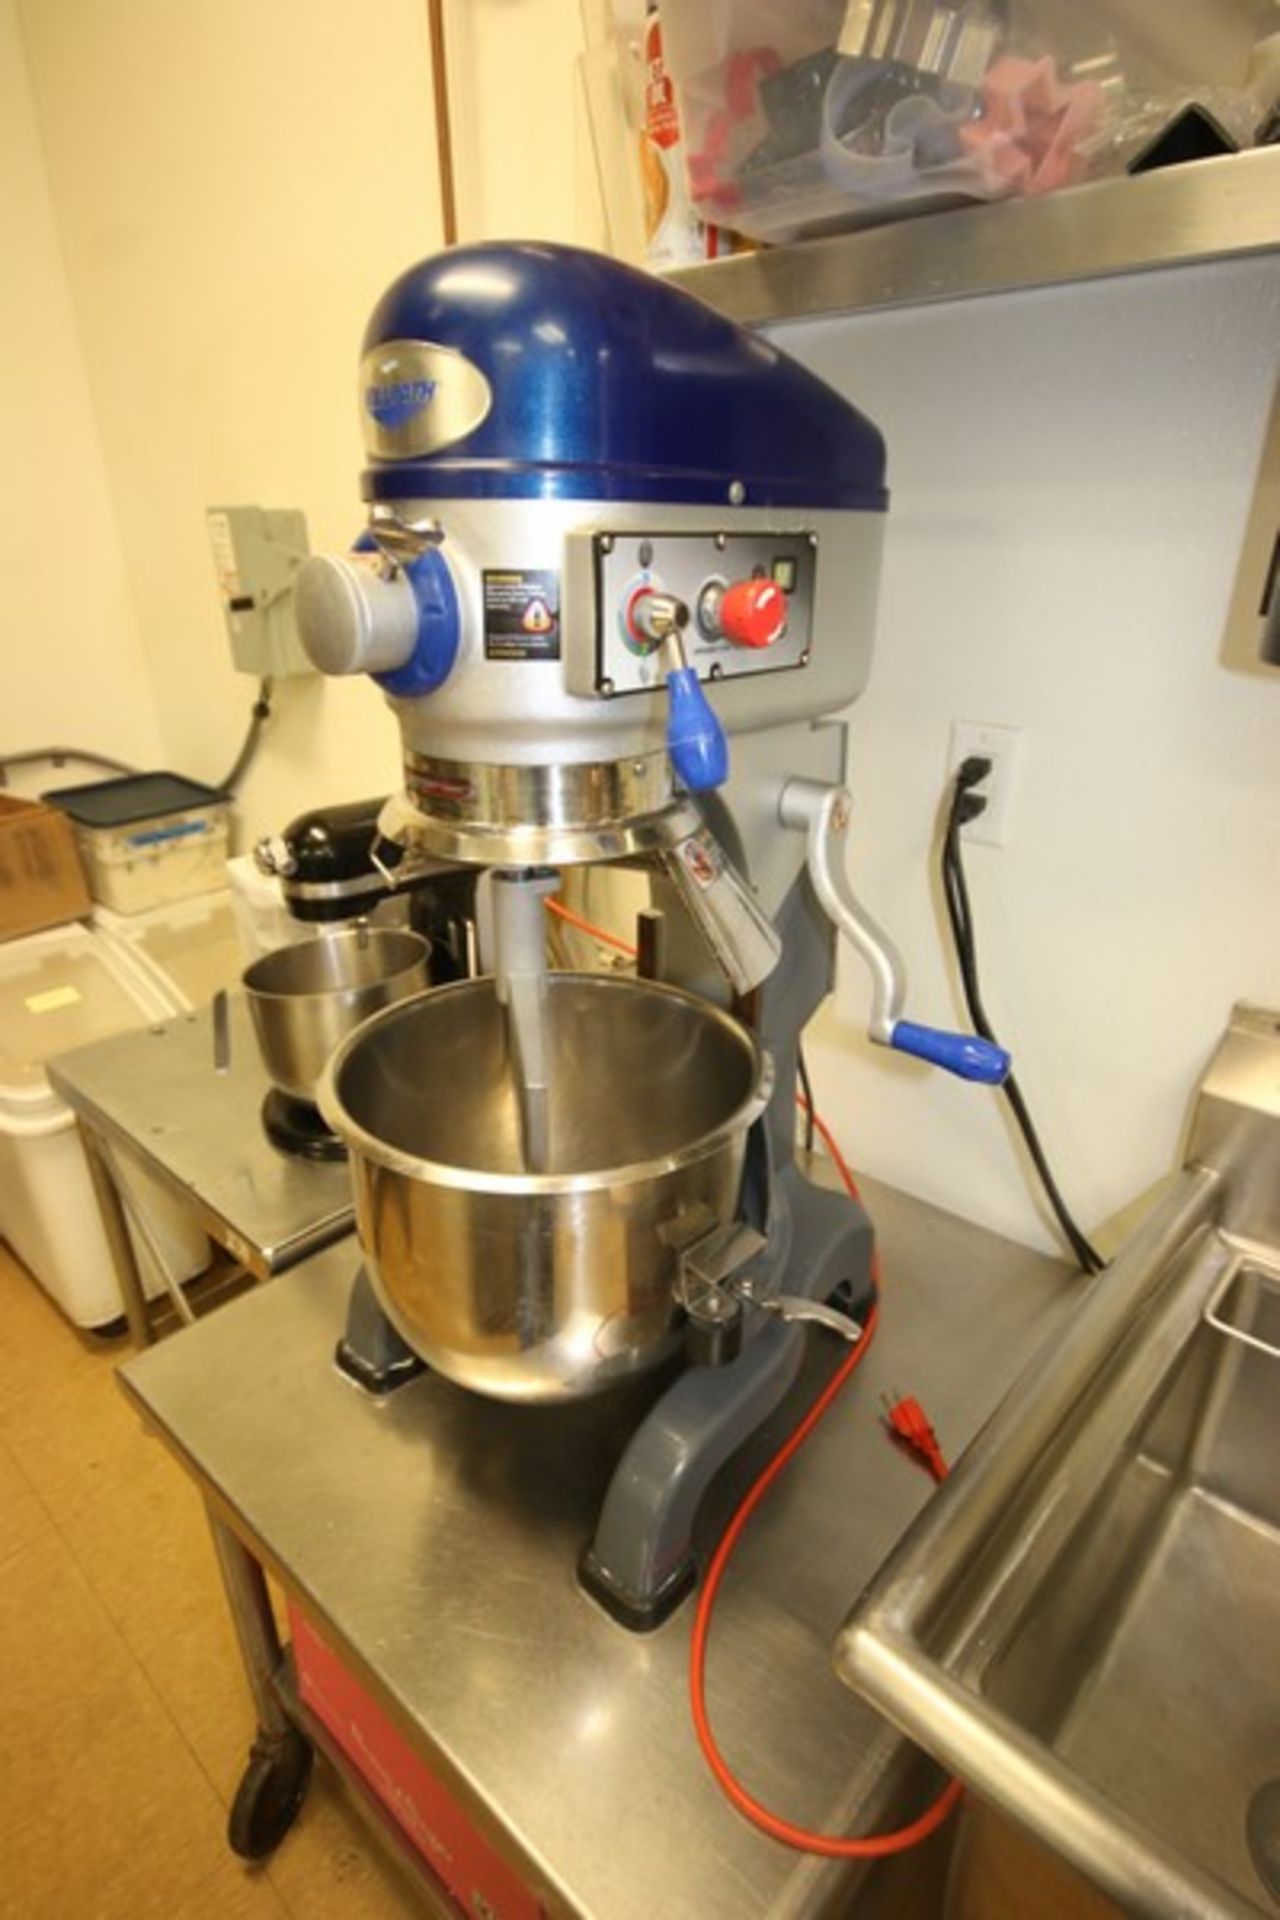 Vollrath Mixer, M/N MIX1020, S/N B42-00181983-0210, with 1/2 hp Motor, 110 Volts, 1 Phase, with S/ - Image 2 of 9